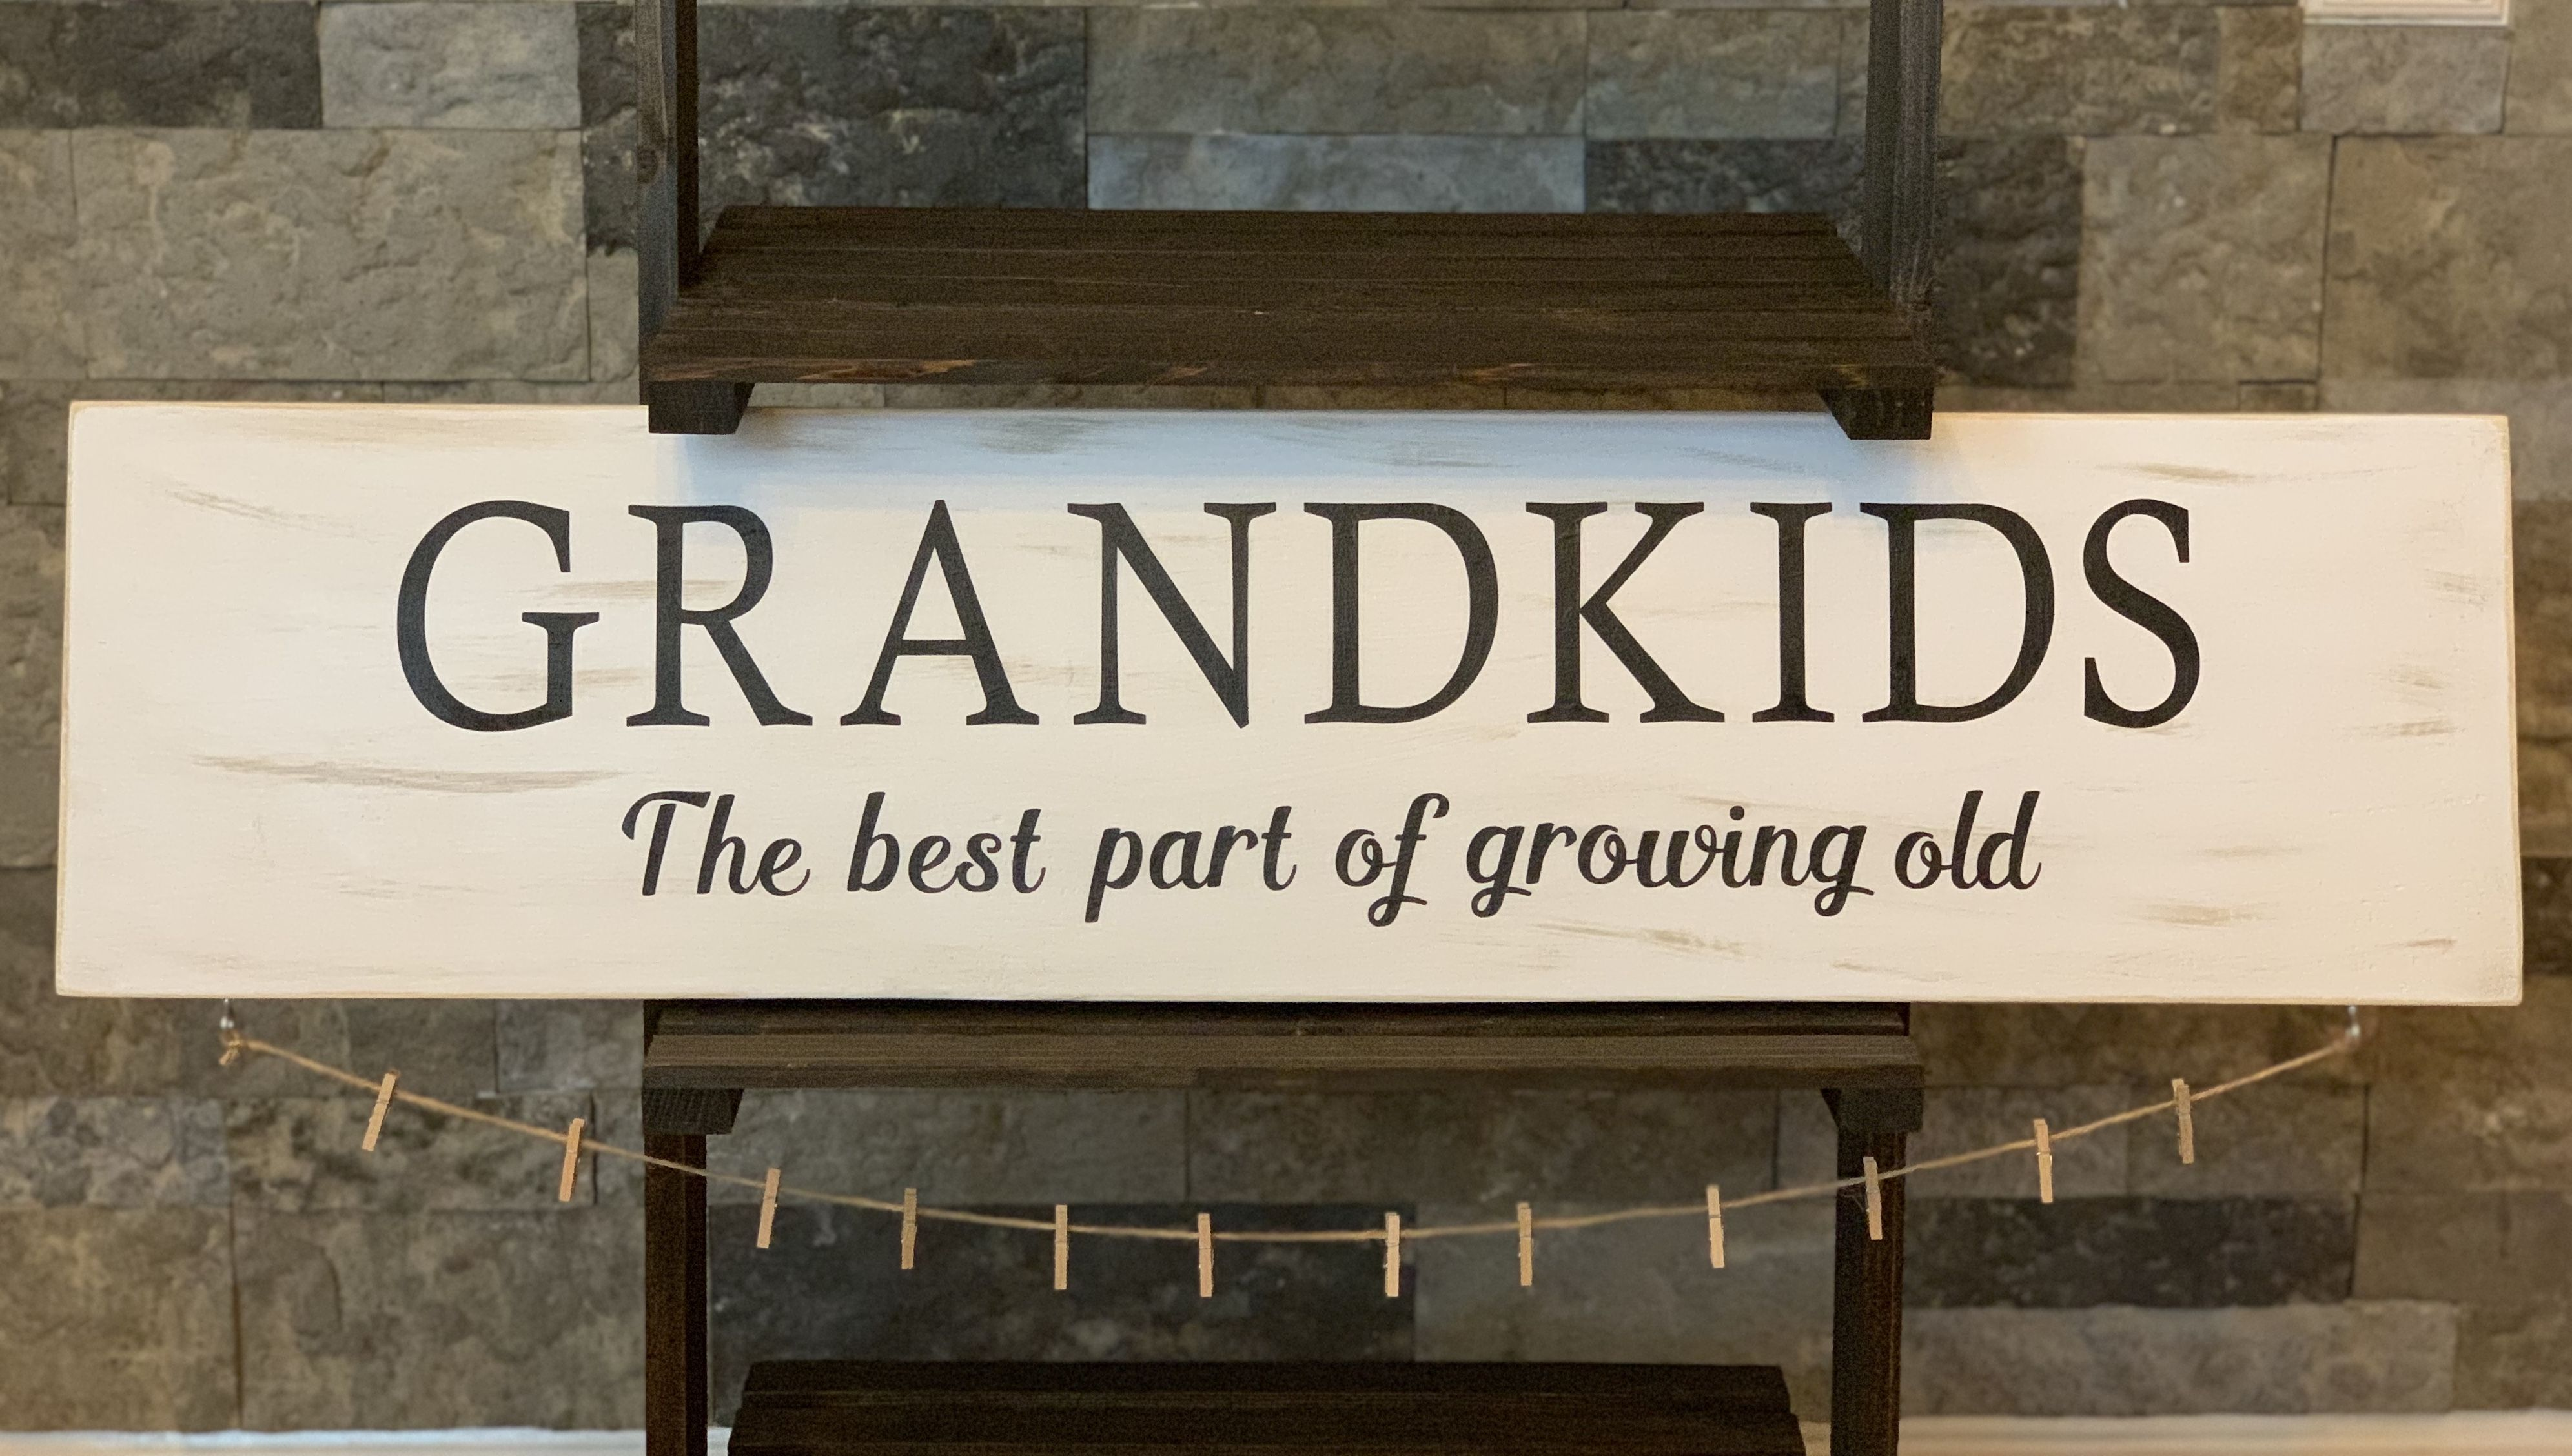 This Root 937 exclusive Grandkids, the best part of growing old, is the perfect sign to give to